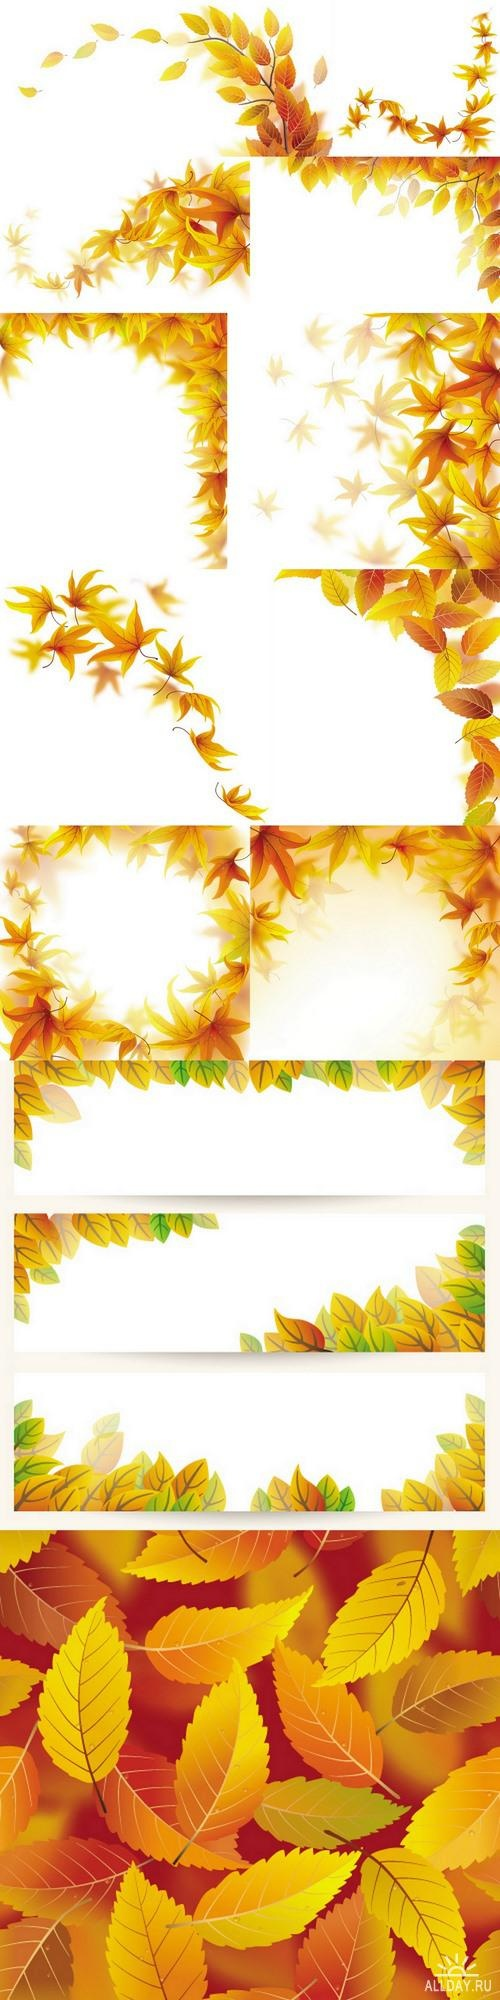 Autumn maple leaves ((eps (13 files)